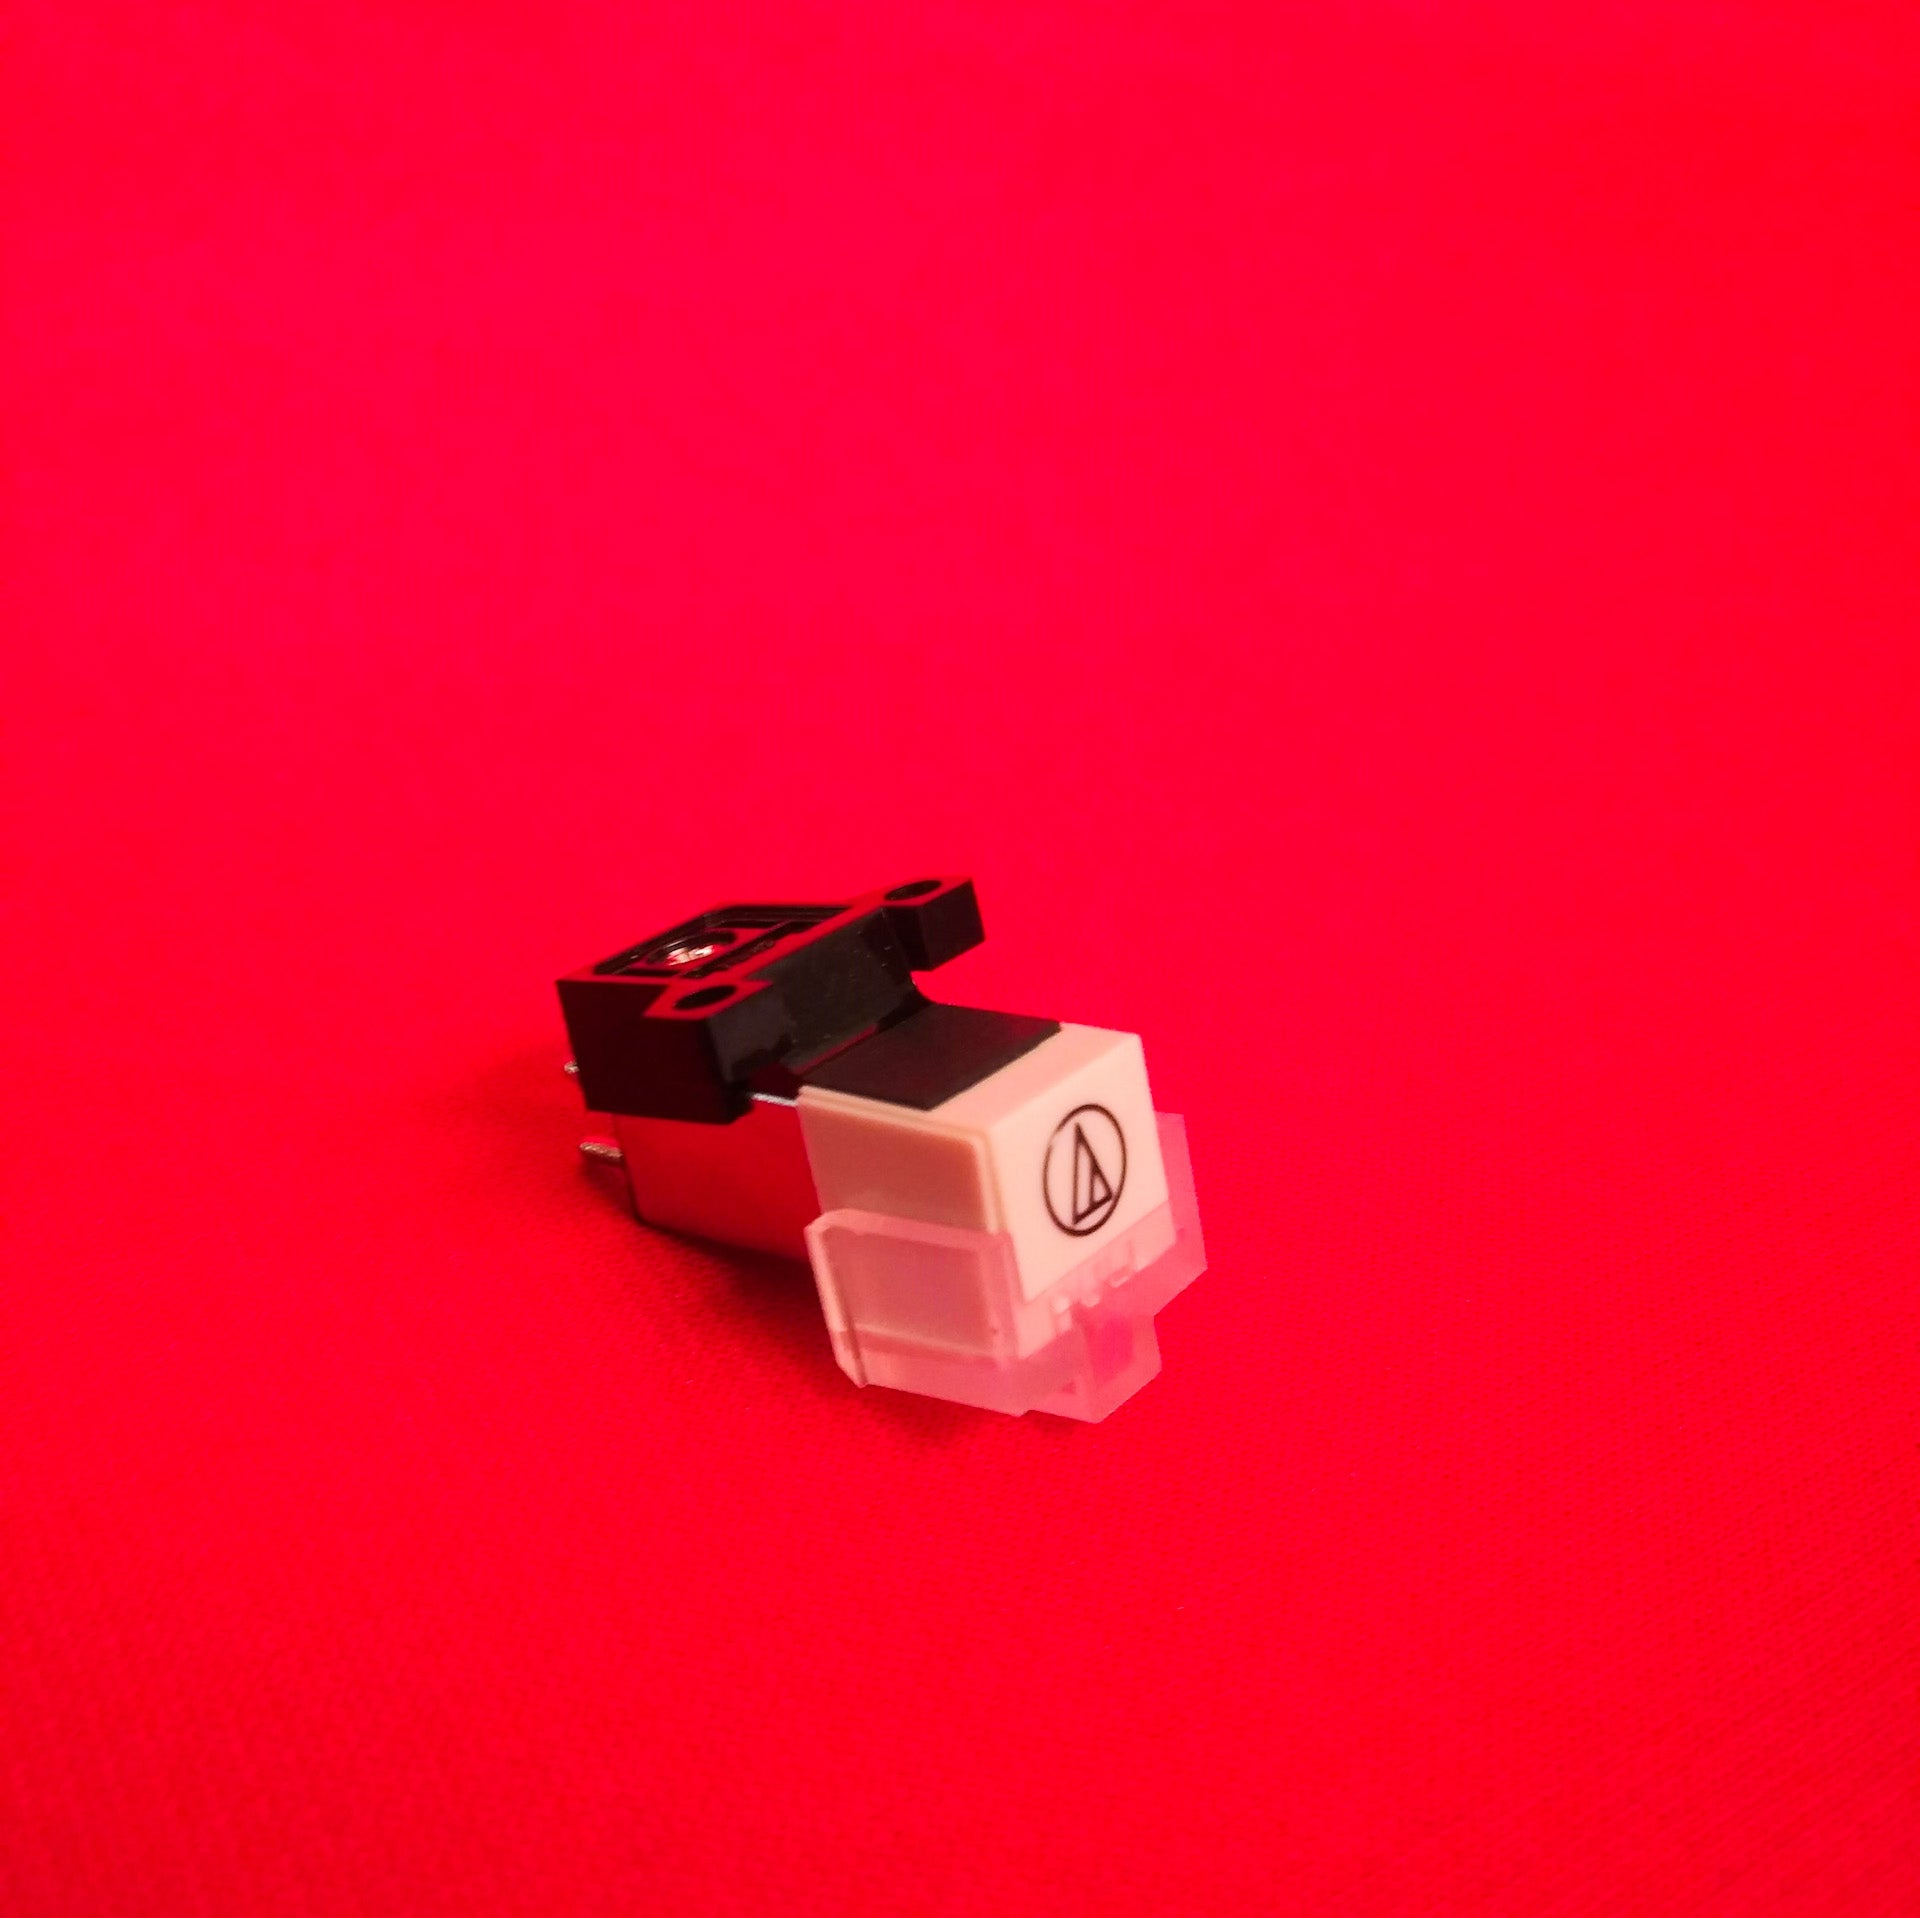 Rock-Ola Vinyl Cartridge and Stylus for new Vinyl 45 Jukebox